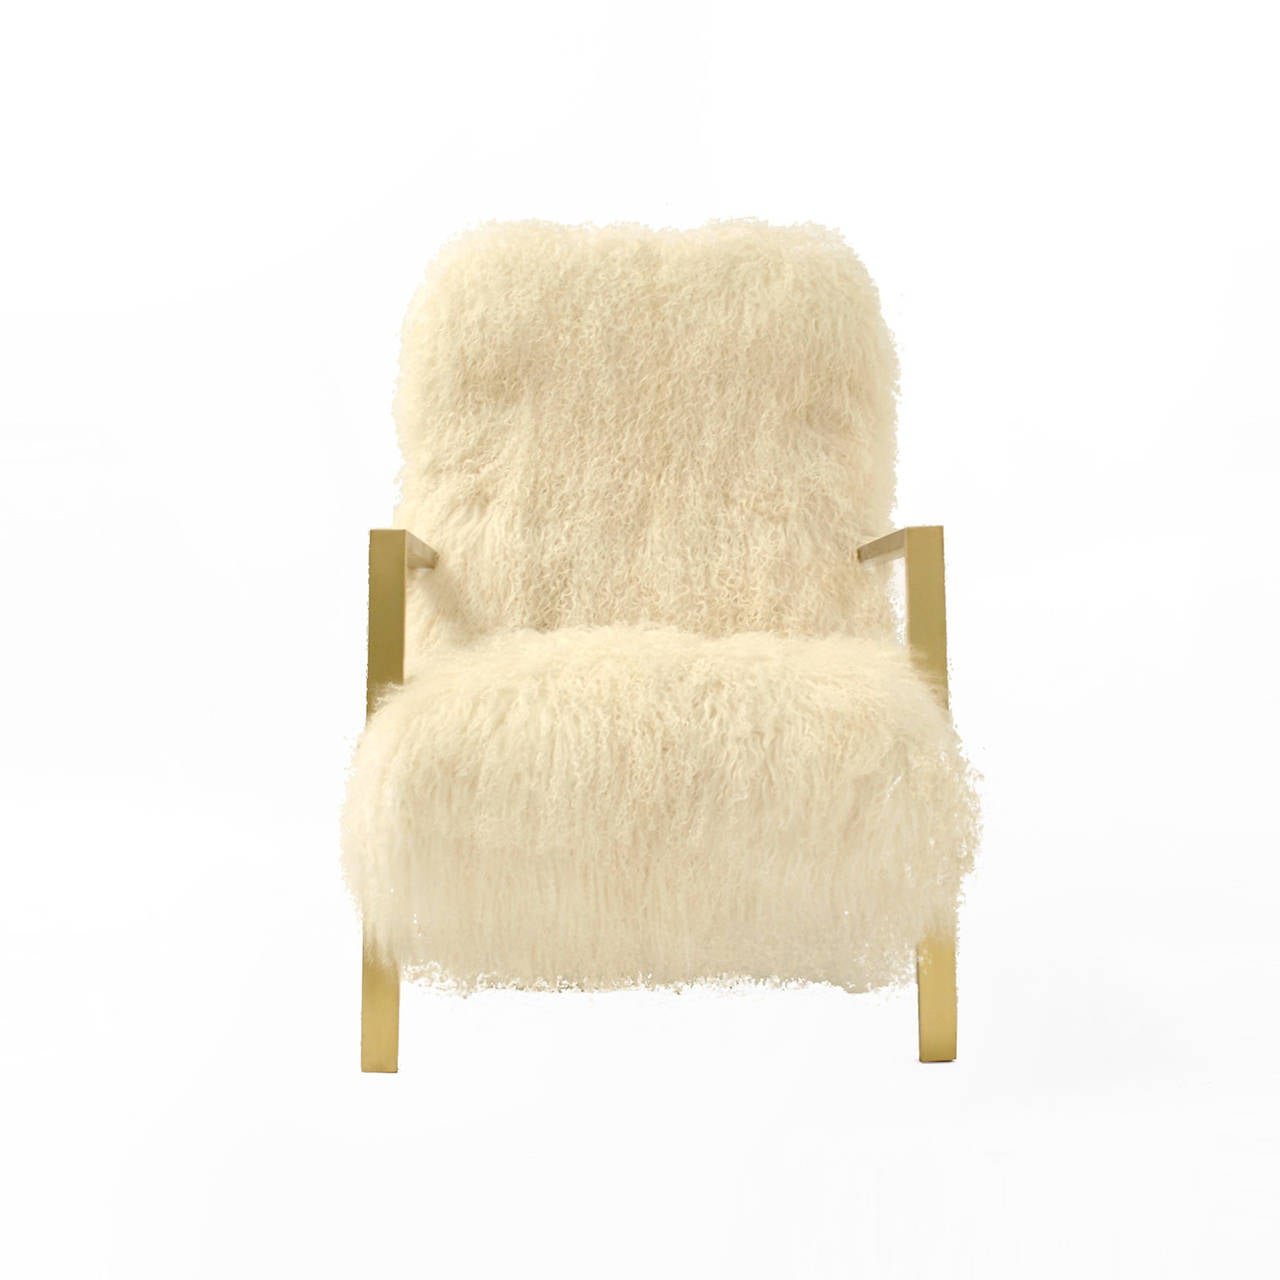 Spanish Mongolian Goat Armchairs For Sale